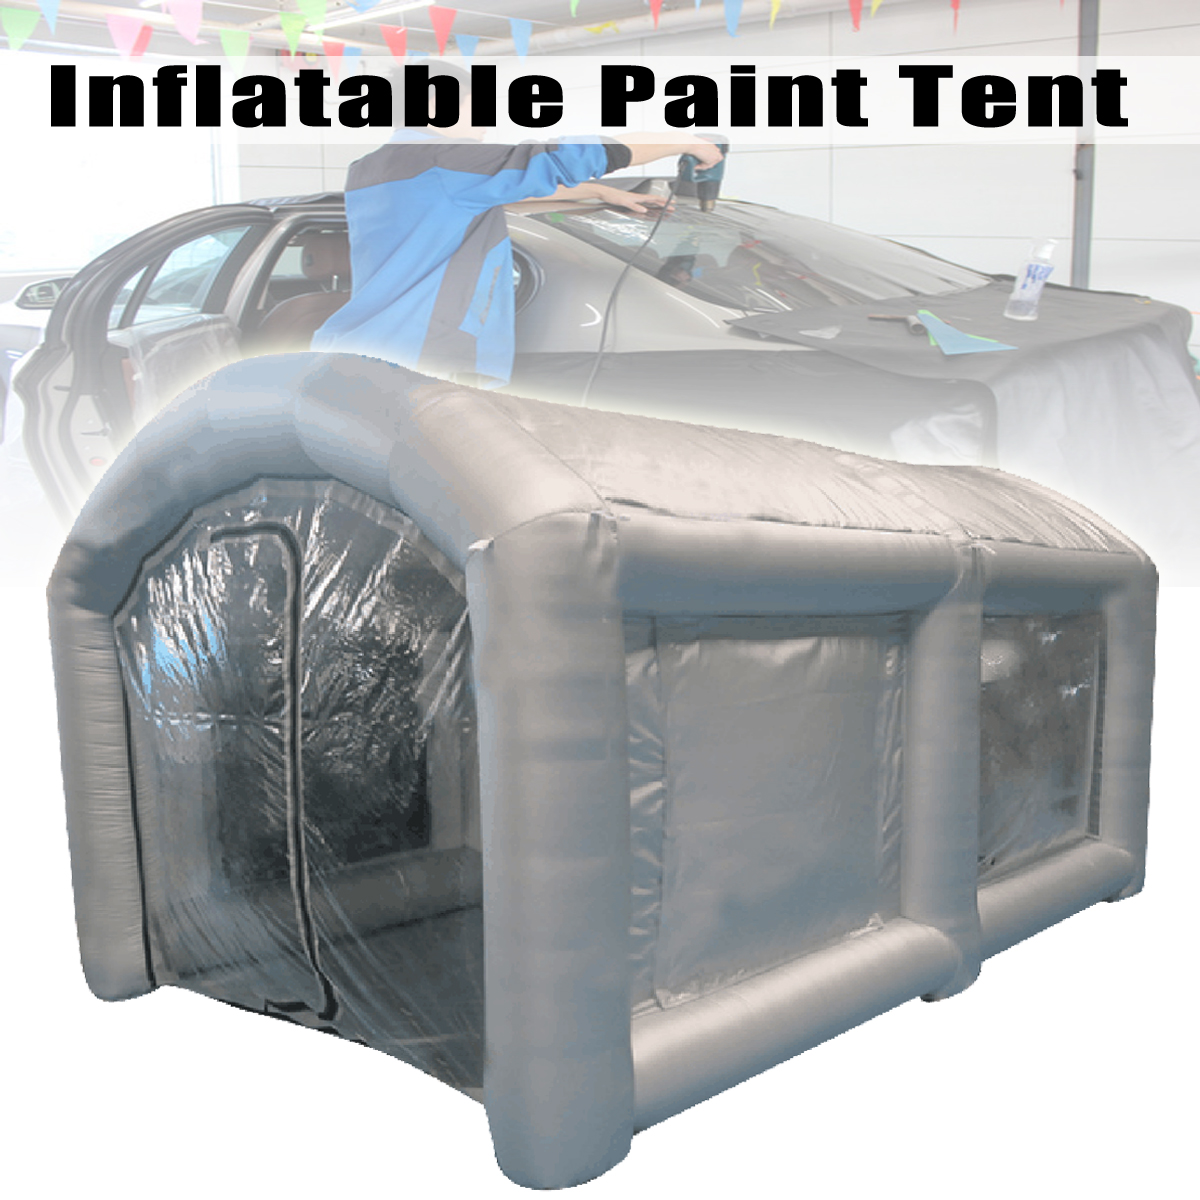 Outdoor Portable 4x2.5x2.2M Inflatable Spray Booth Tents Inflatable Paint booth Car Parking Tent Workstation with Blower free shipping inflatable spray paint garage booth tent high quality 8x4 5x3 meters cabine de peinture gonflable toy tents